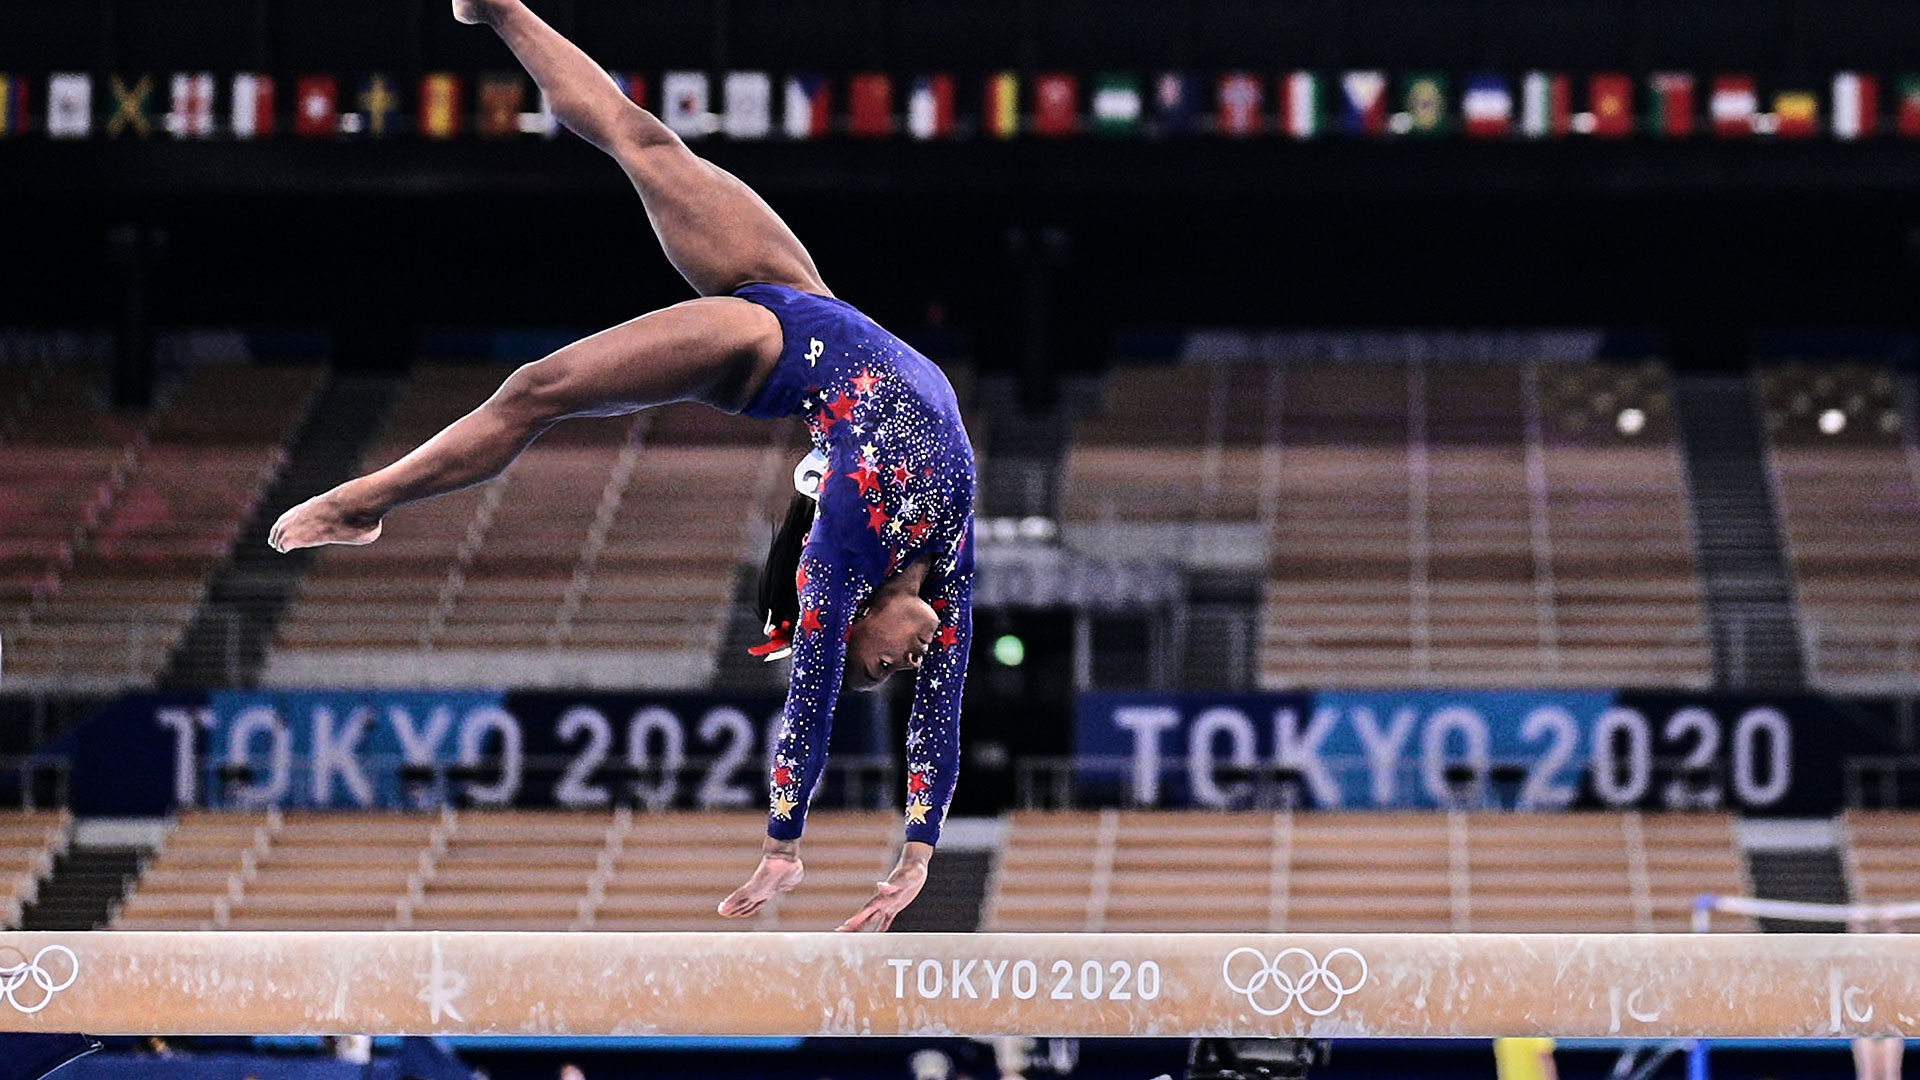 Simone Biles and the U.S. women enter the final after trailing another team, the Russian Olympic Committee, in qualification for the first time at a major international championship since 2010.